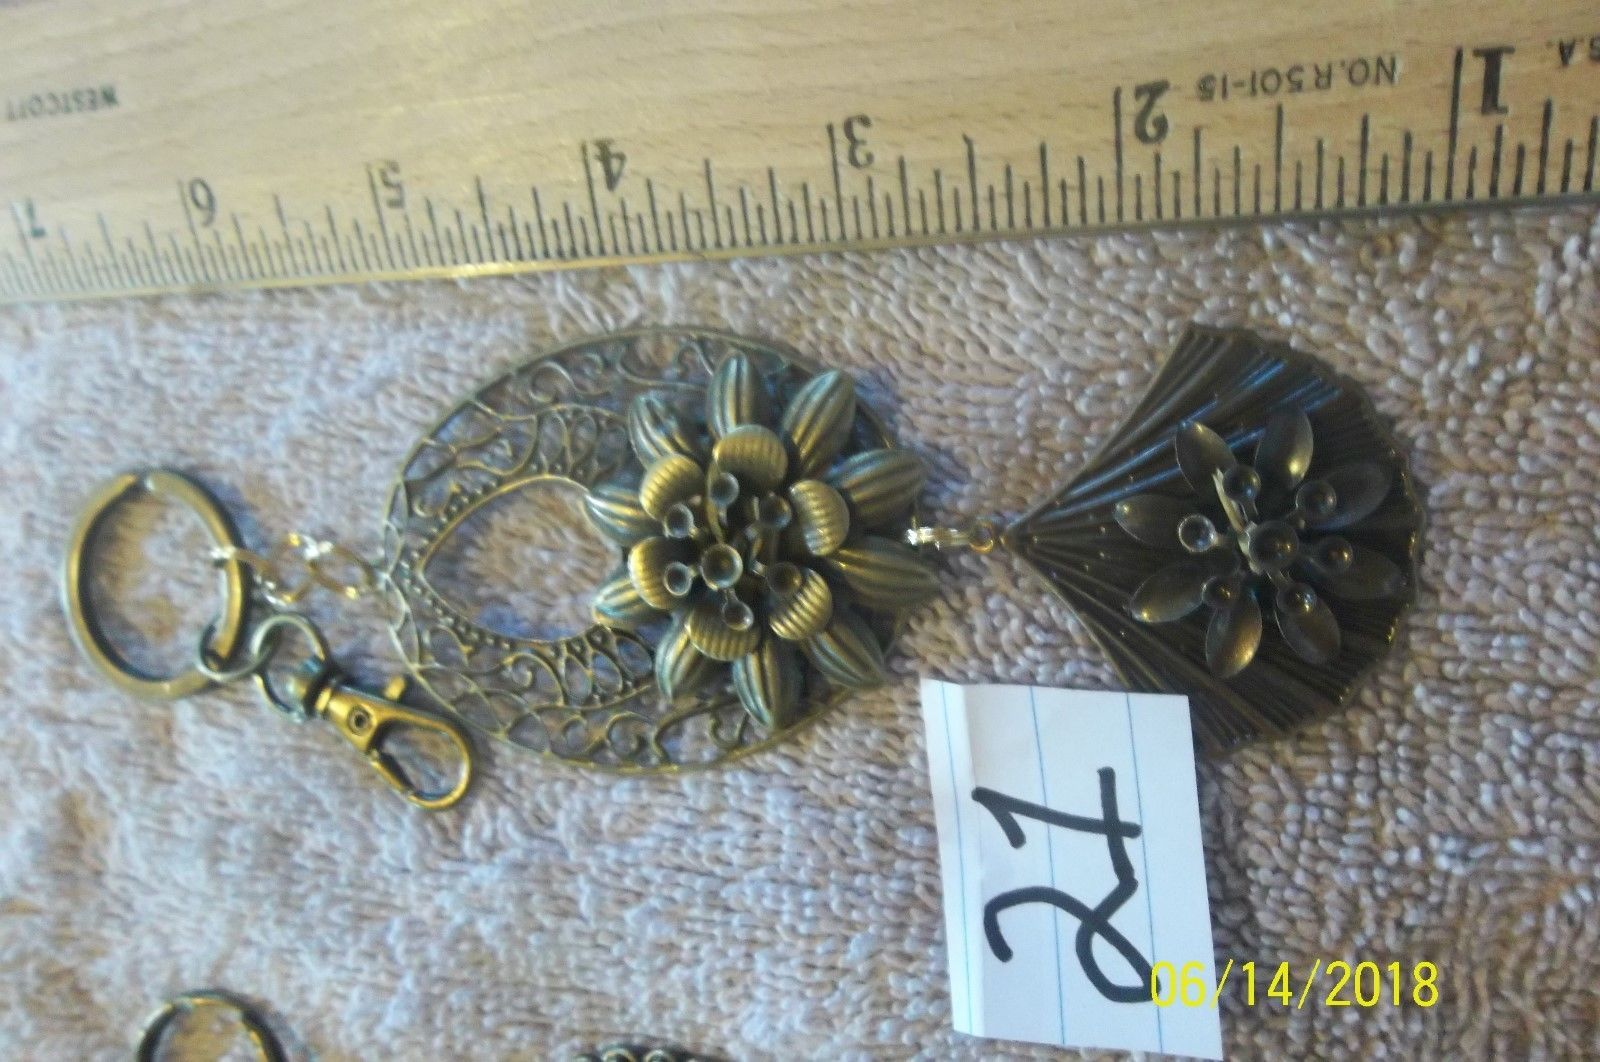 #purse jewelry bronze color keychain backpack filigree charms lot of 3 floral 21 image 3